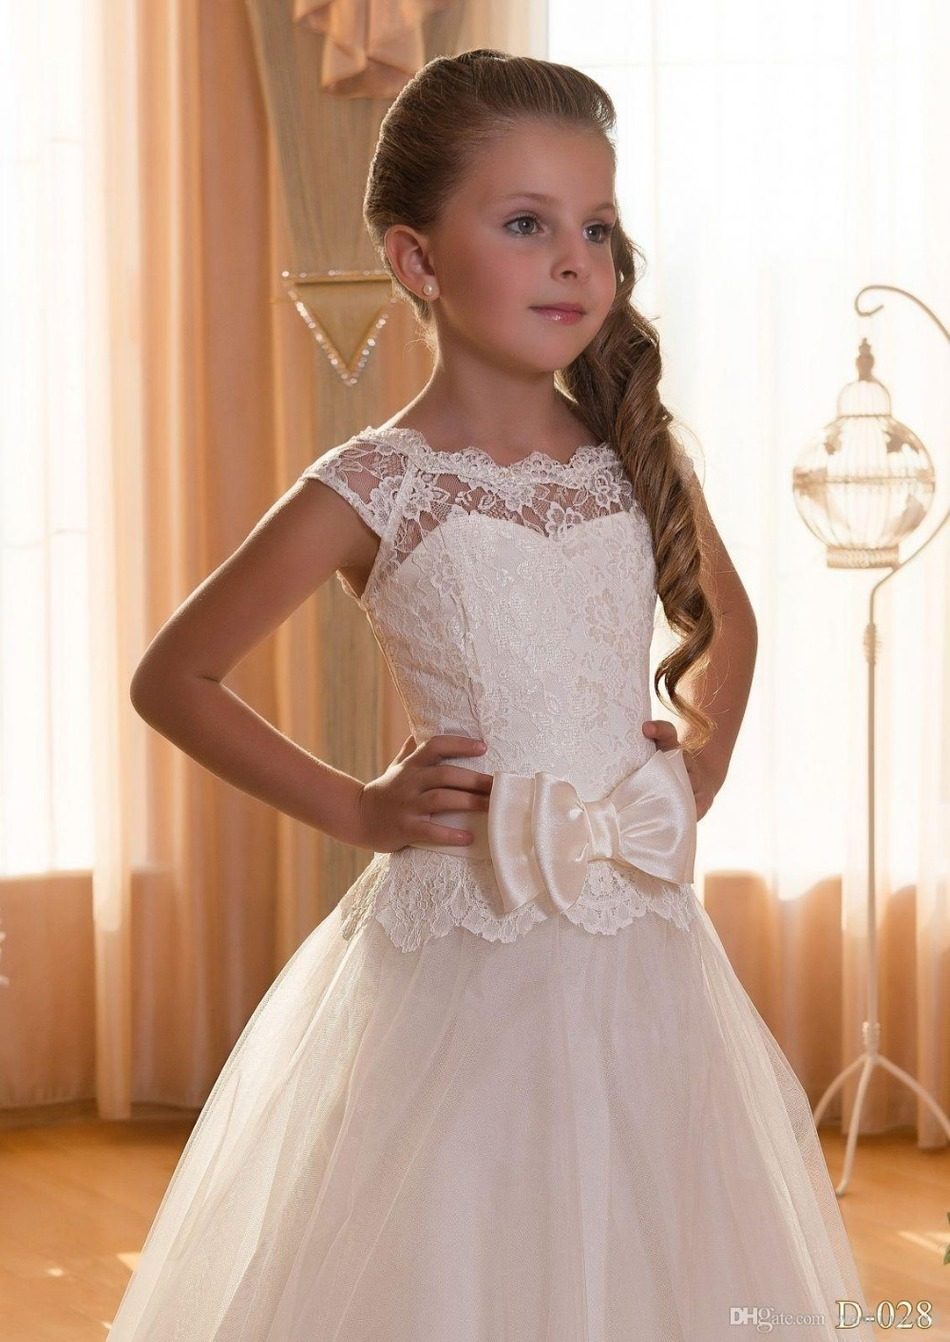 White lace apron wedding - 2016 Hot White Ivory Lace Tulle Flower Girl Dresses For Weddings Sash Bow Ball Gown Cap